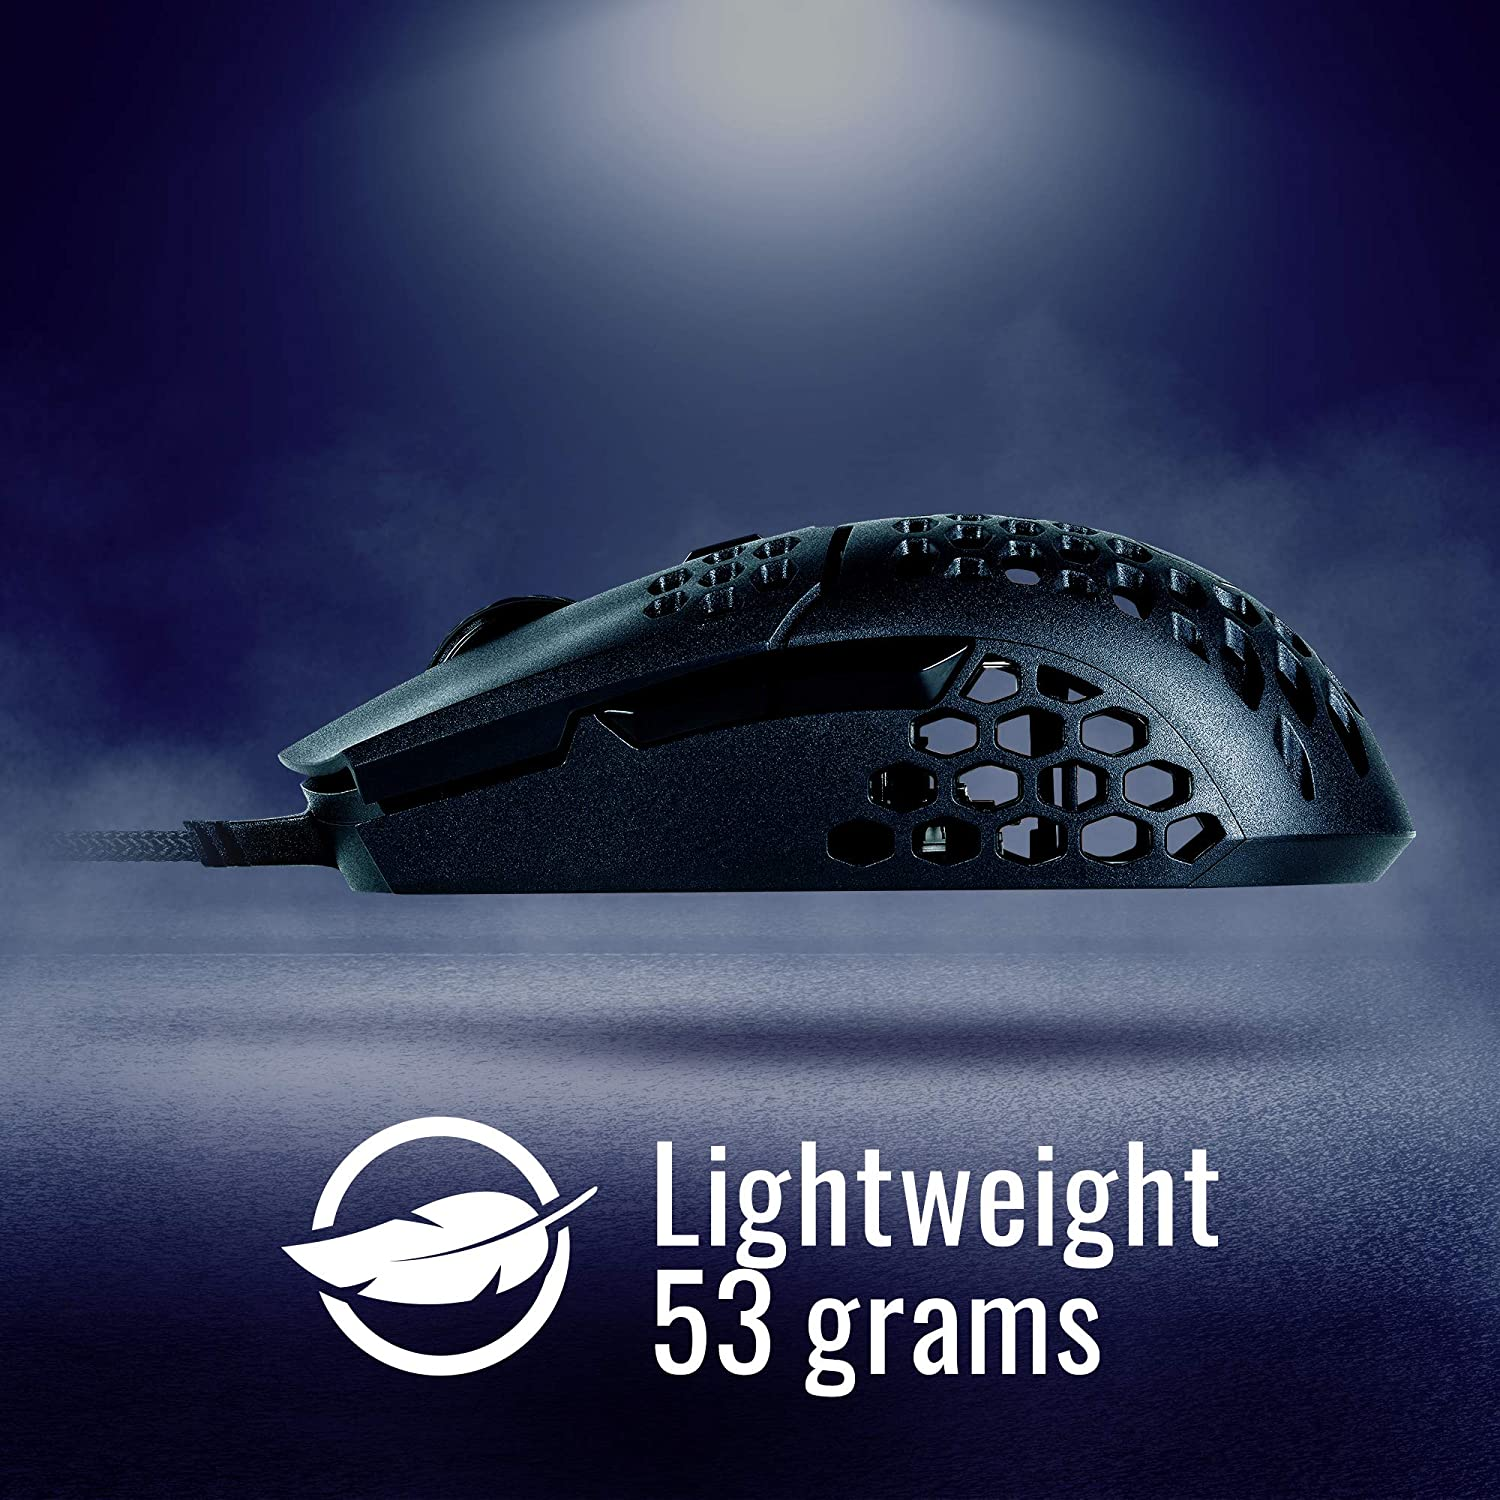 finalmouse